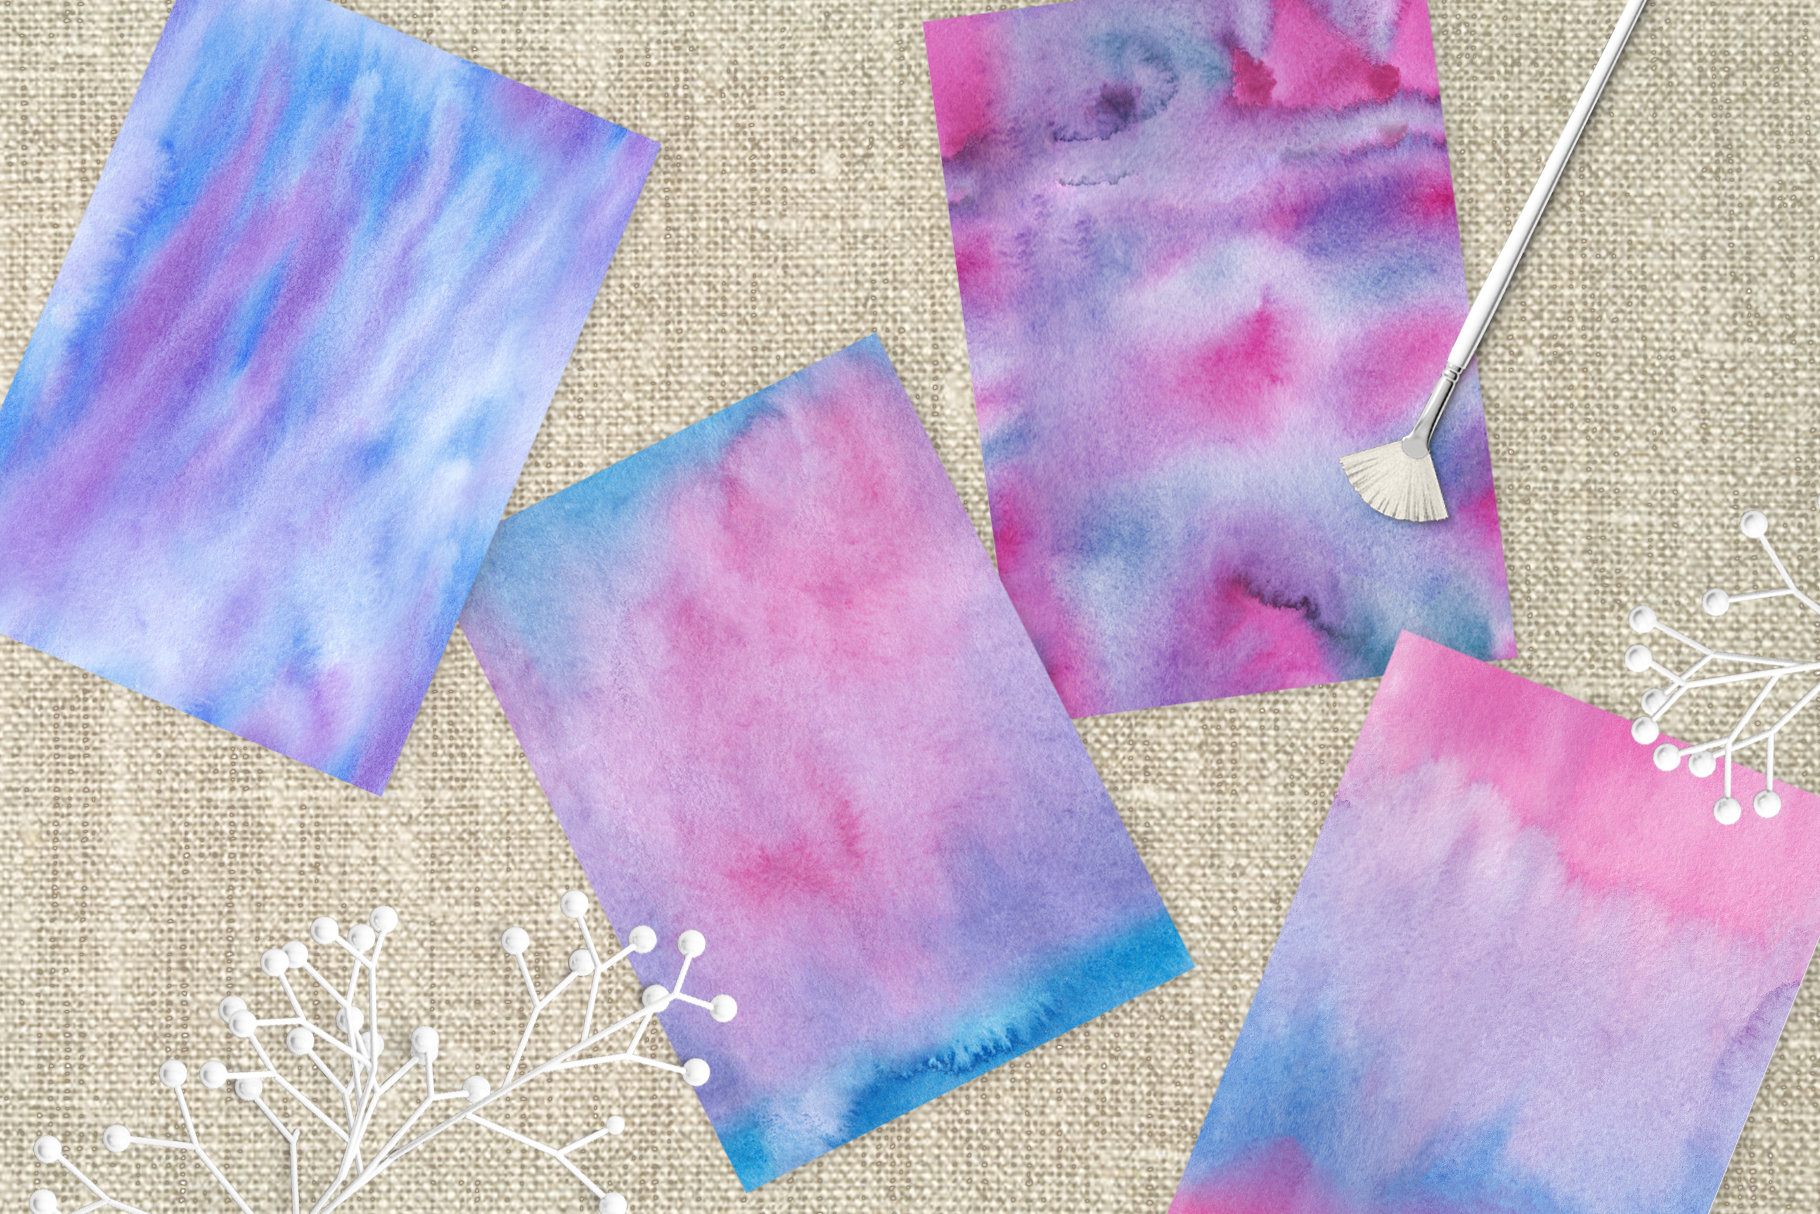 Watercolor Hand Drawn Seamless Textures example image 3